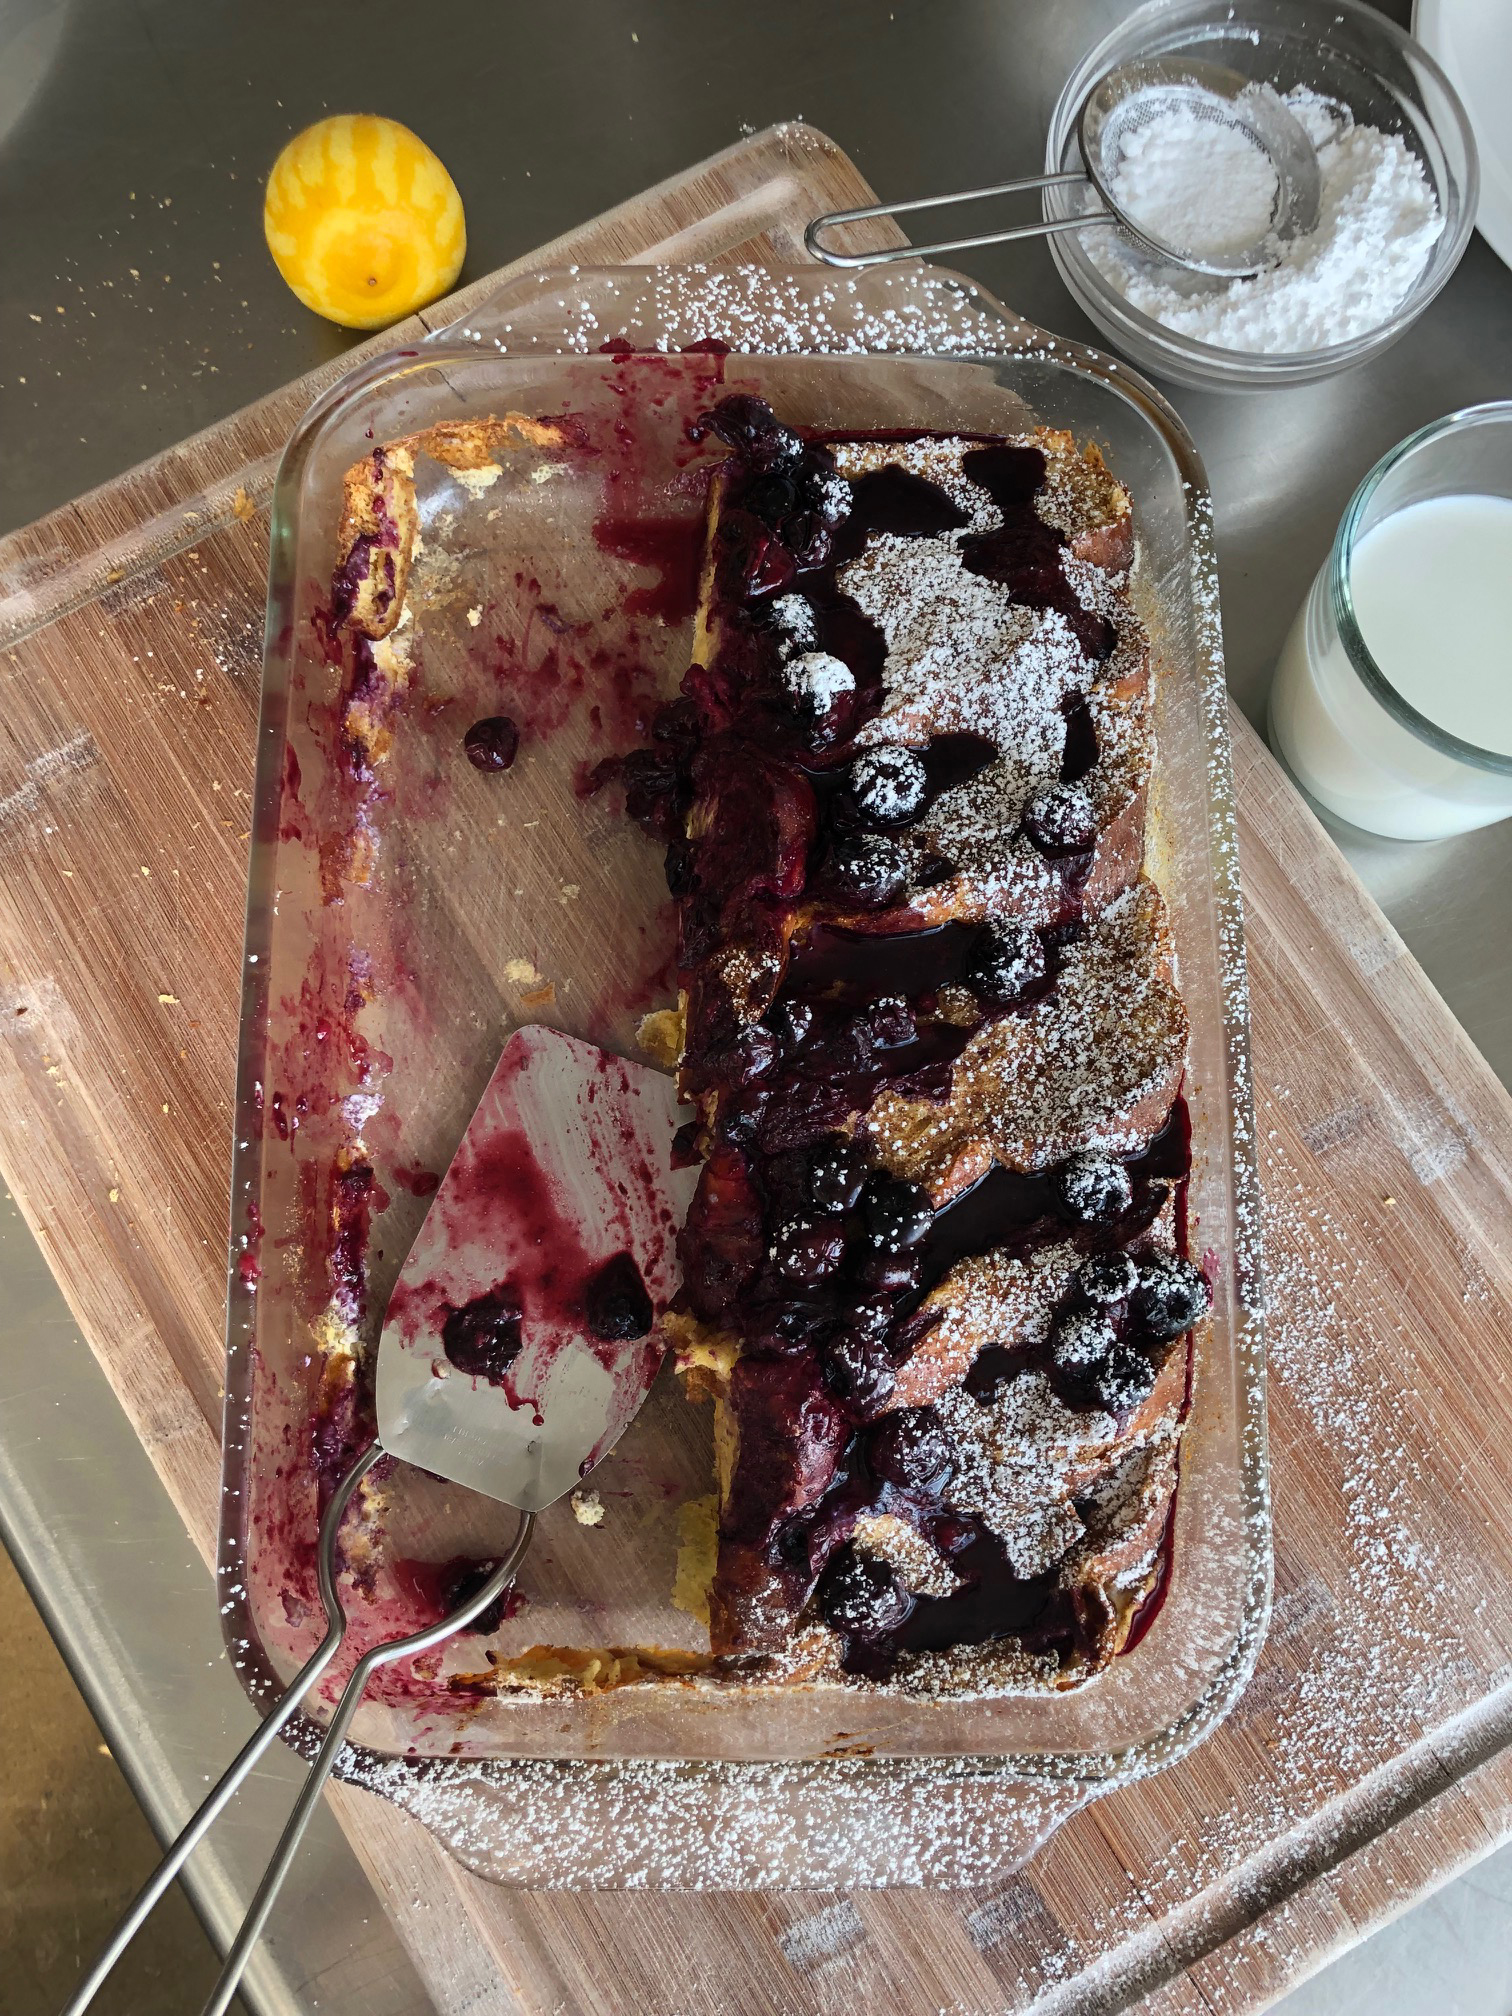 blintz french toast dessert with spatula and powdered sugar topping